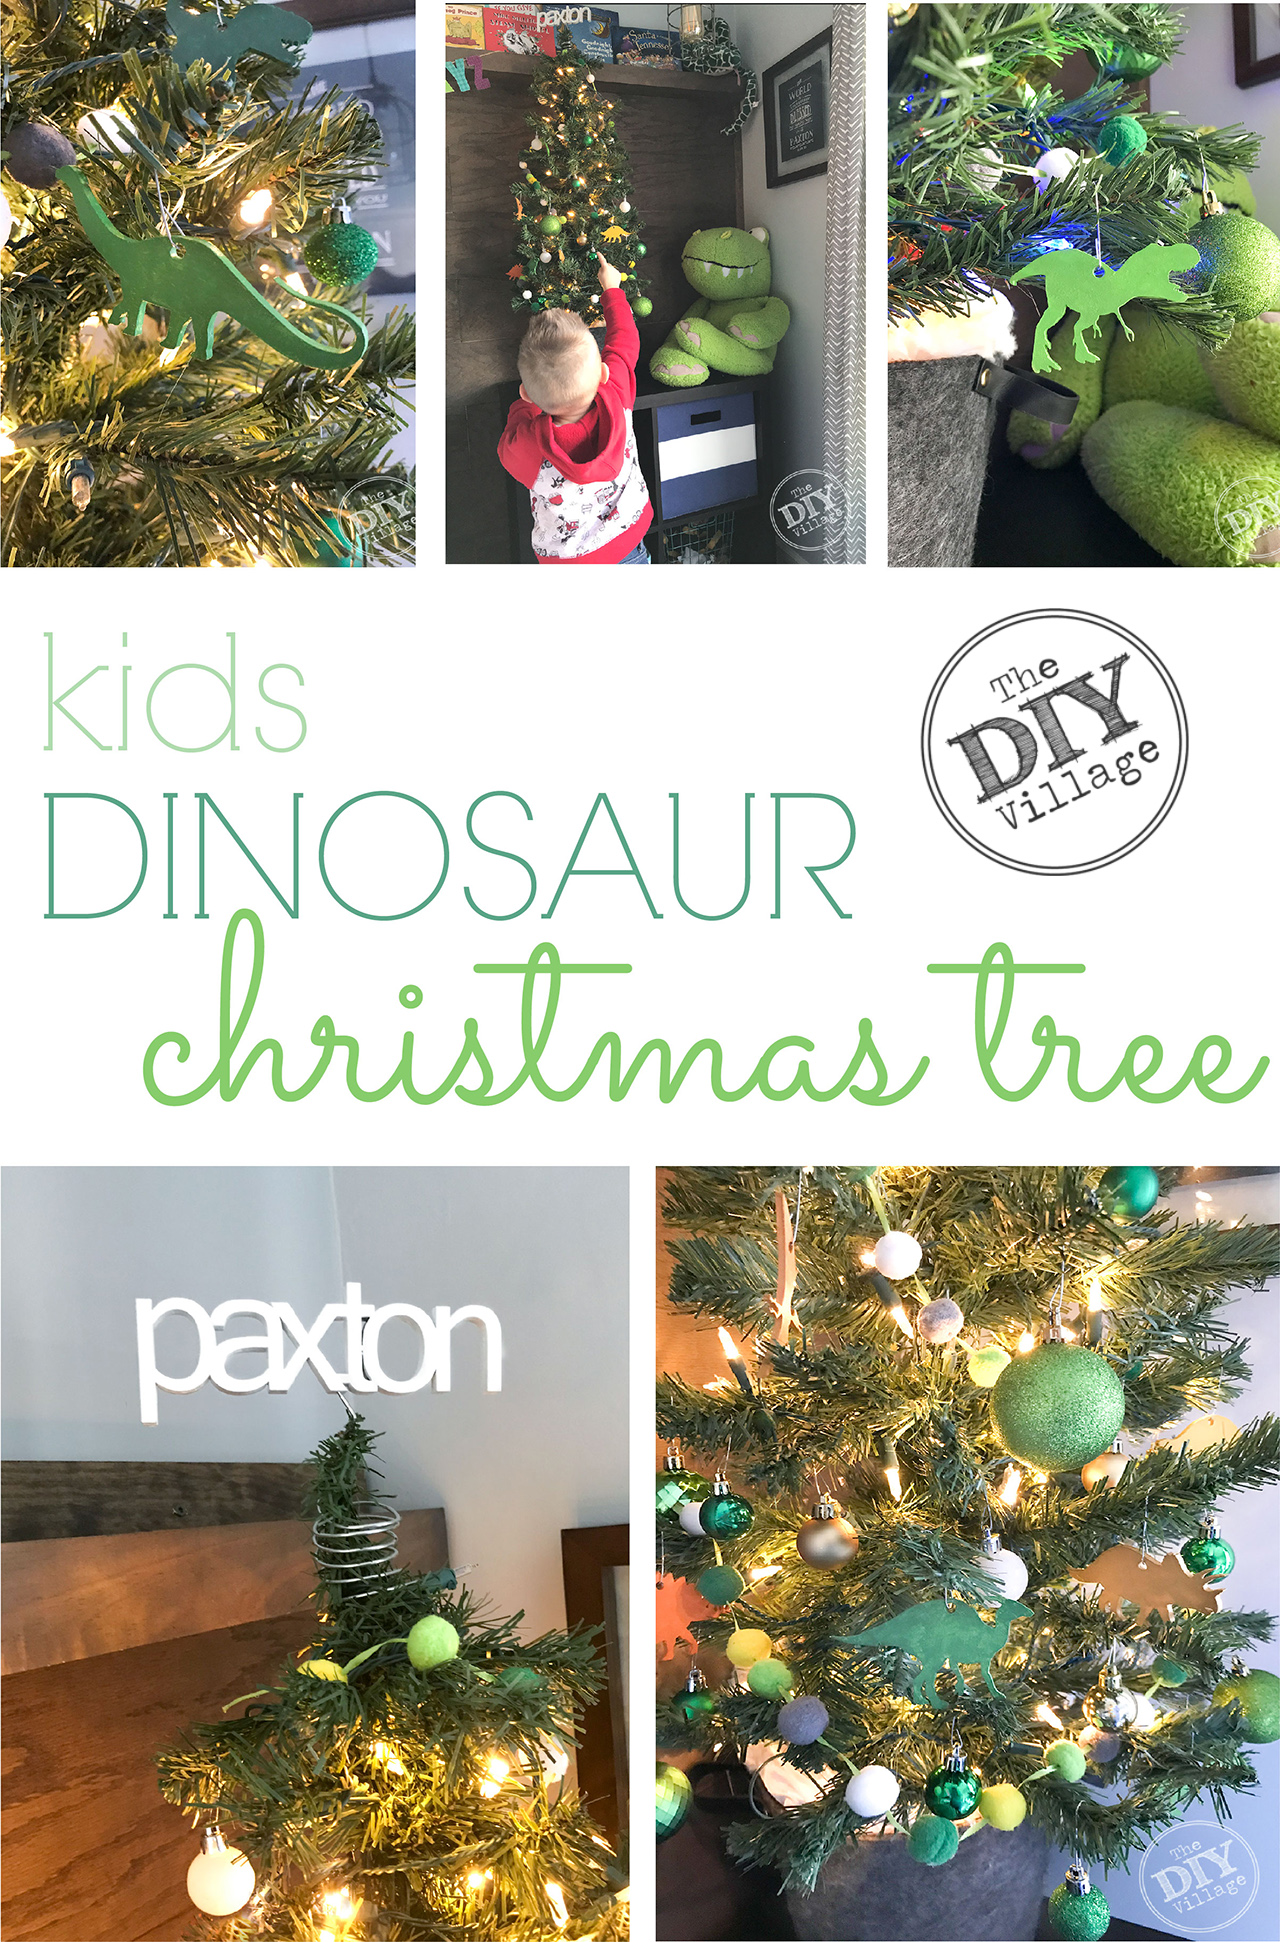 Adorable kids dinosaur Christmas tree. So cute for a little ones room! #christmastree #kidstree #nametreetopper #dinosaur